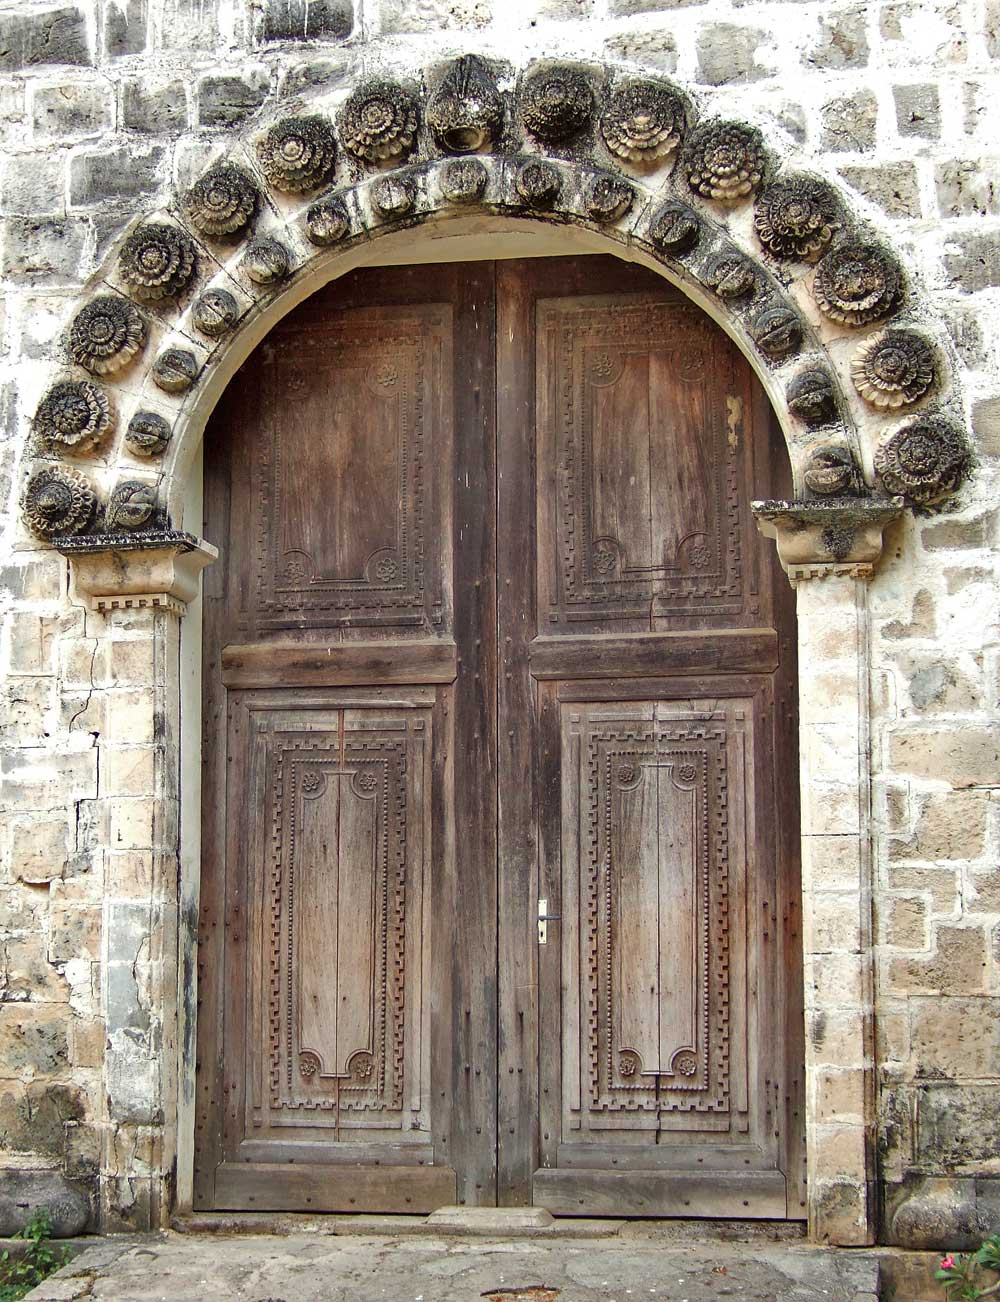 Main doorway, Anini-y Church, Antique Province